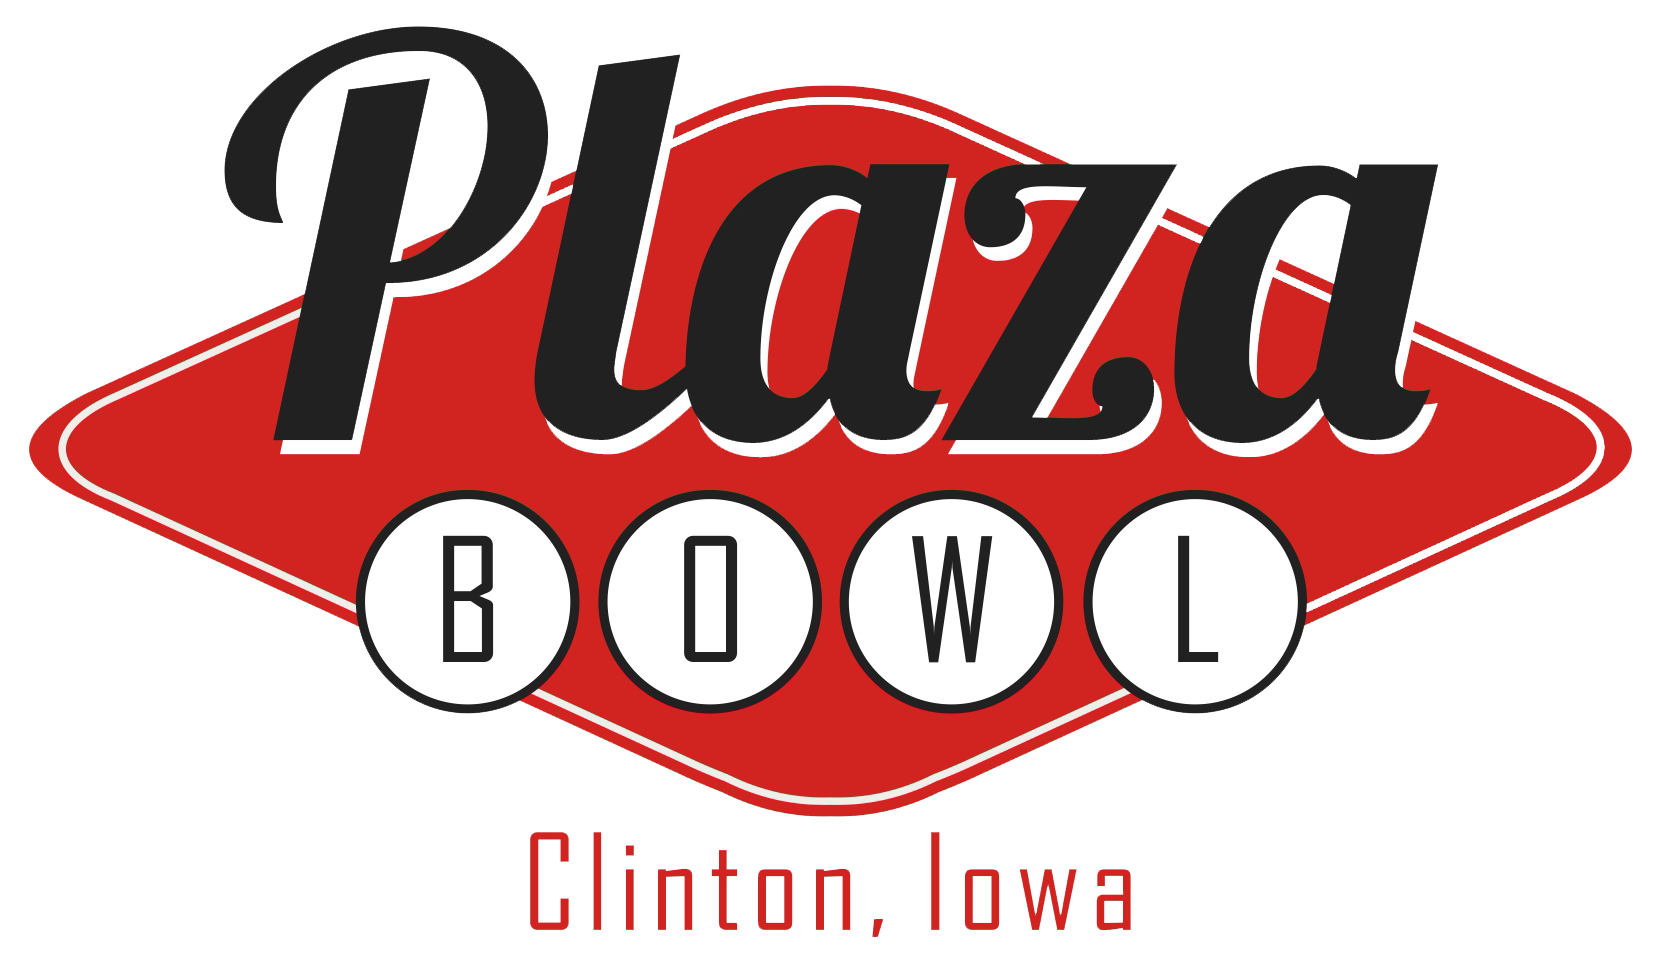 Plaza Bowl - Clinton